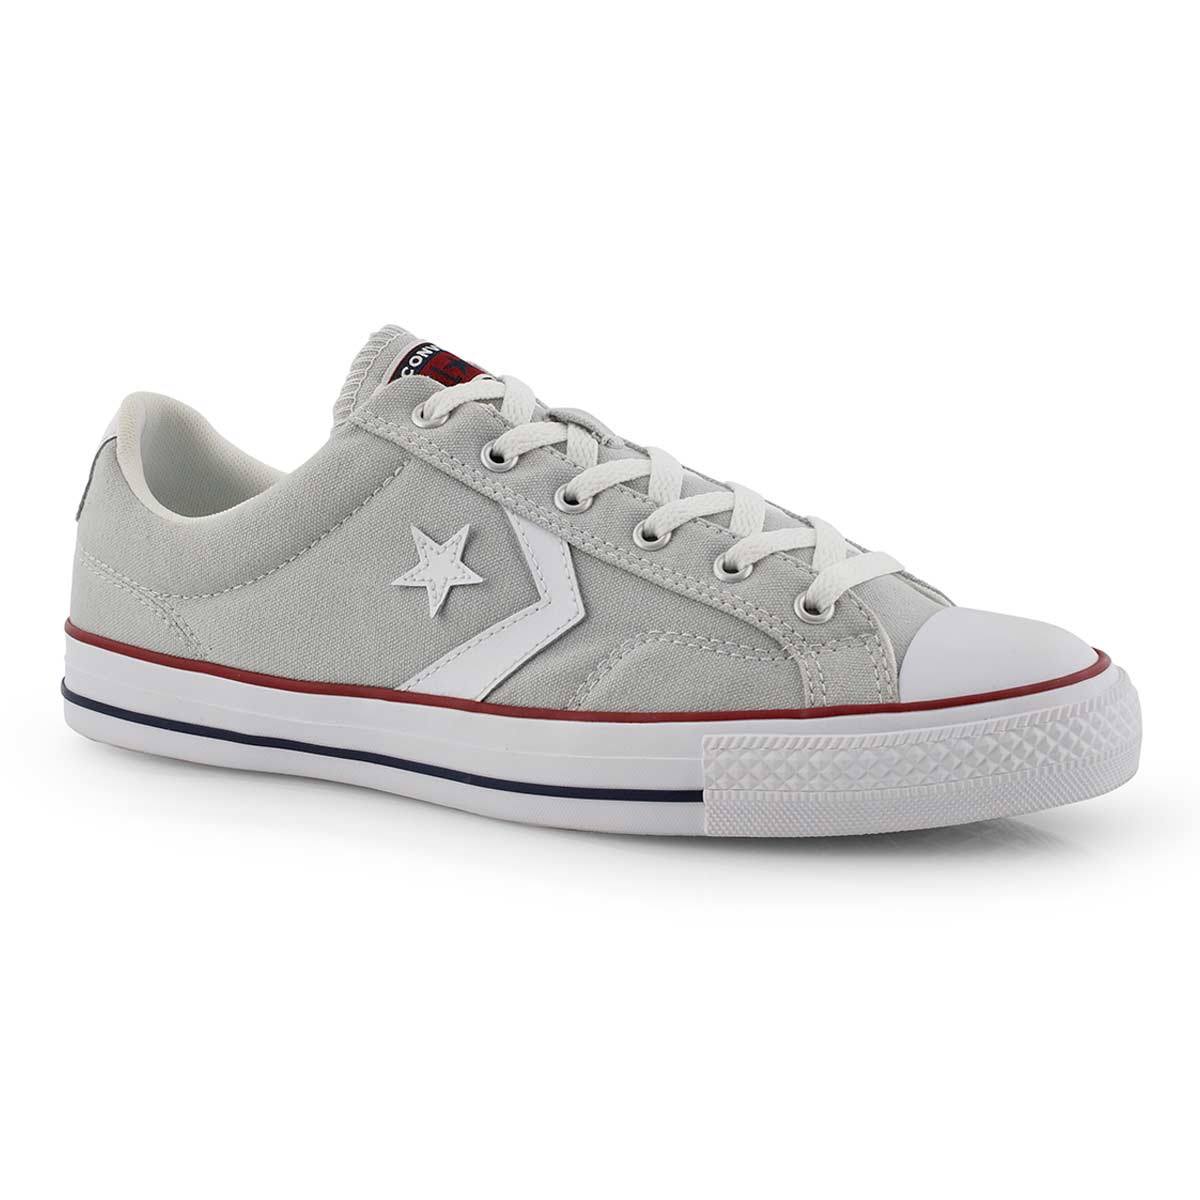 Mns Star Player cloud gry/wht snkr